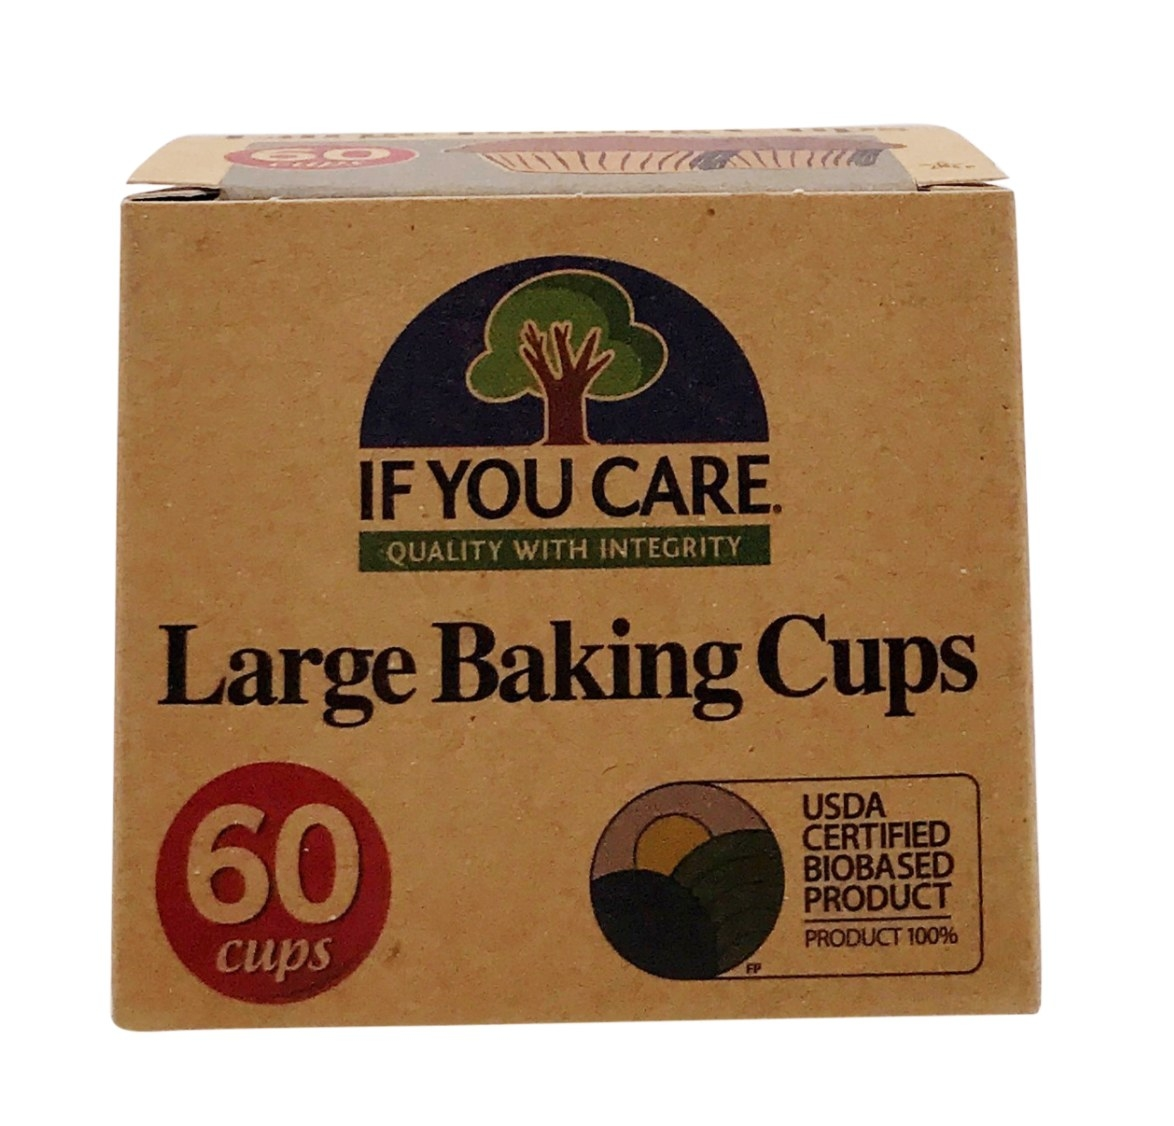 A cardboard box with 60 large baking cups.